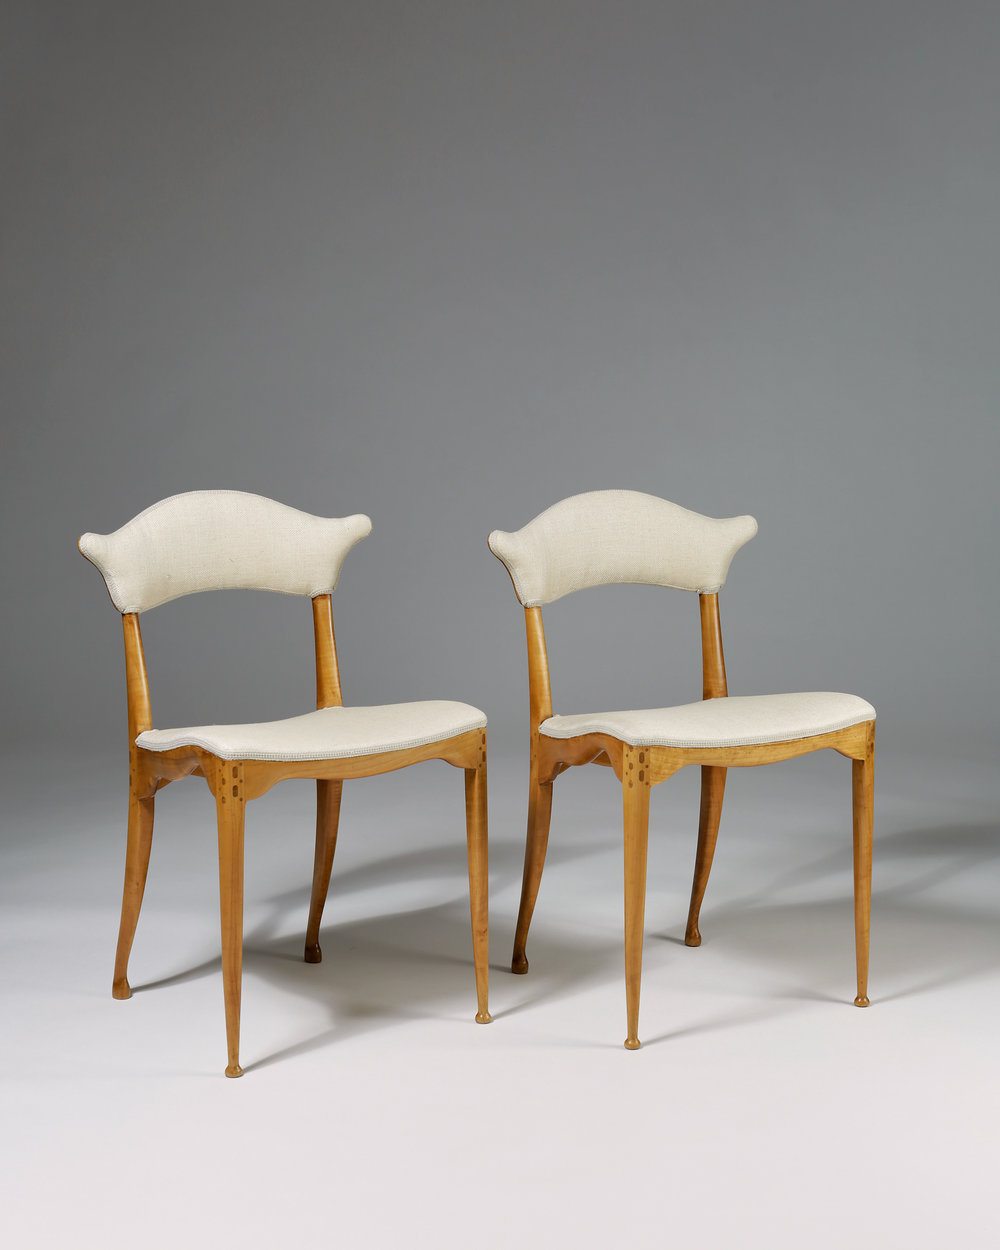 Peder Moos  Two pierced back chairs Denmark, 1949 Solid hand carved walnut with box wood inlays 80 x 50 x 52 cm Seat: 46 cm